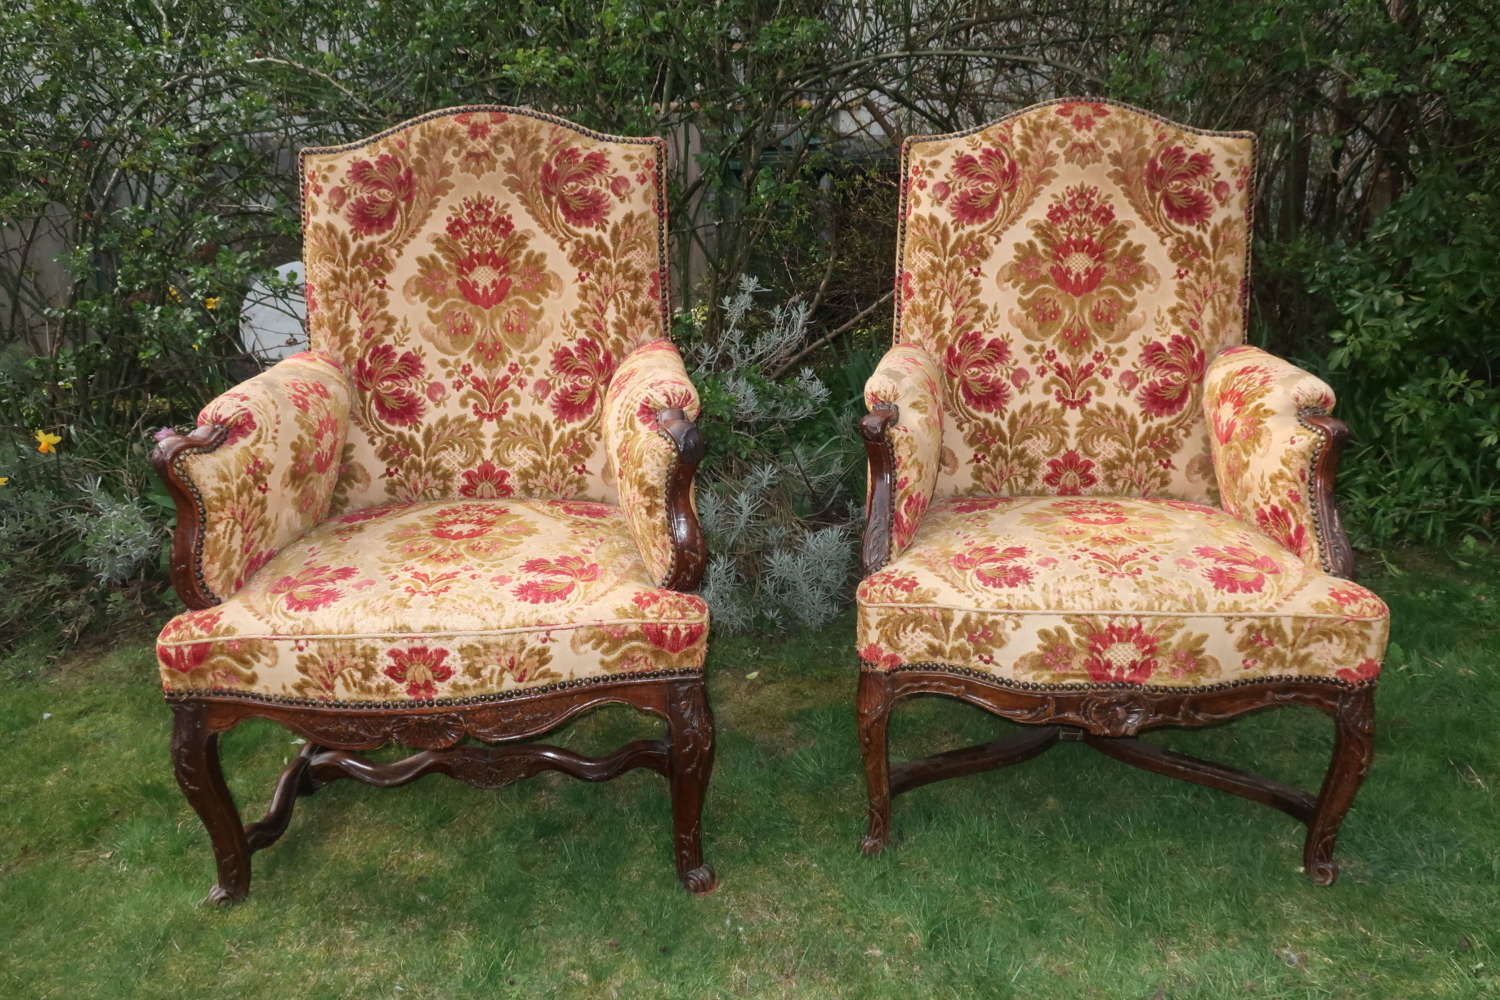 Matched pair of 18th Century French Bergere armchairs